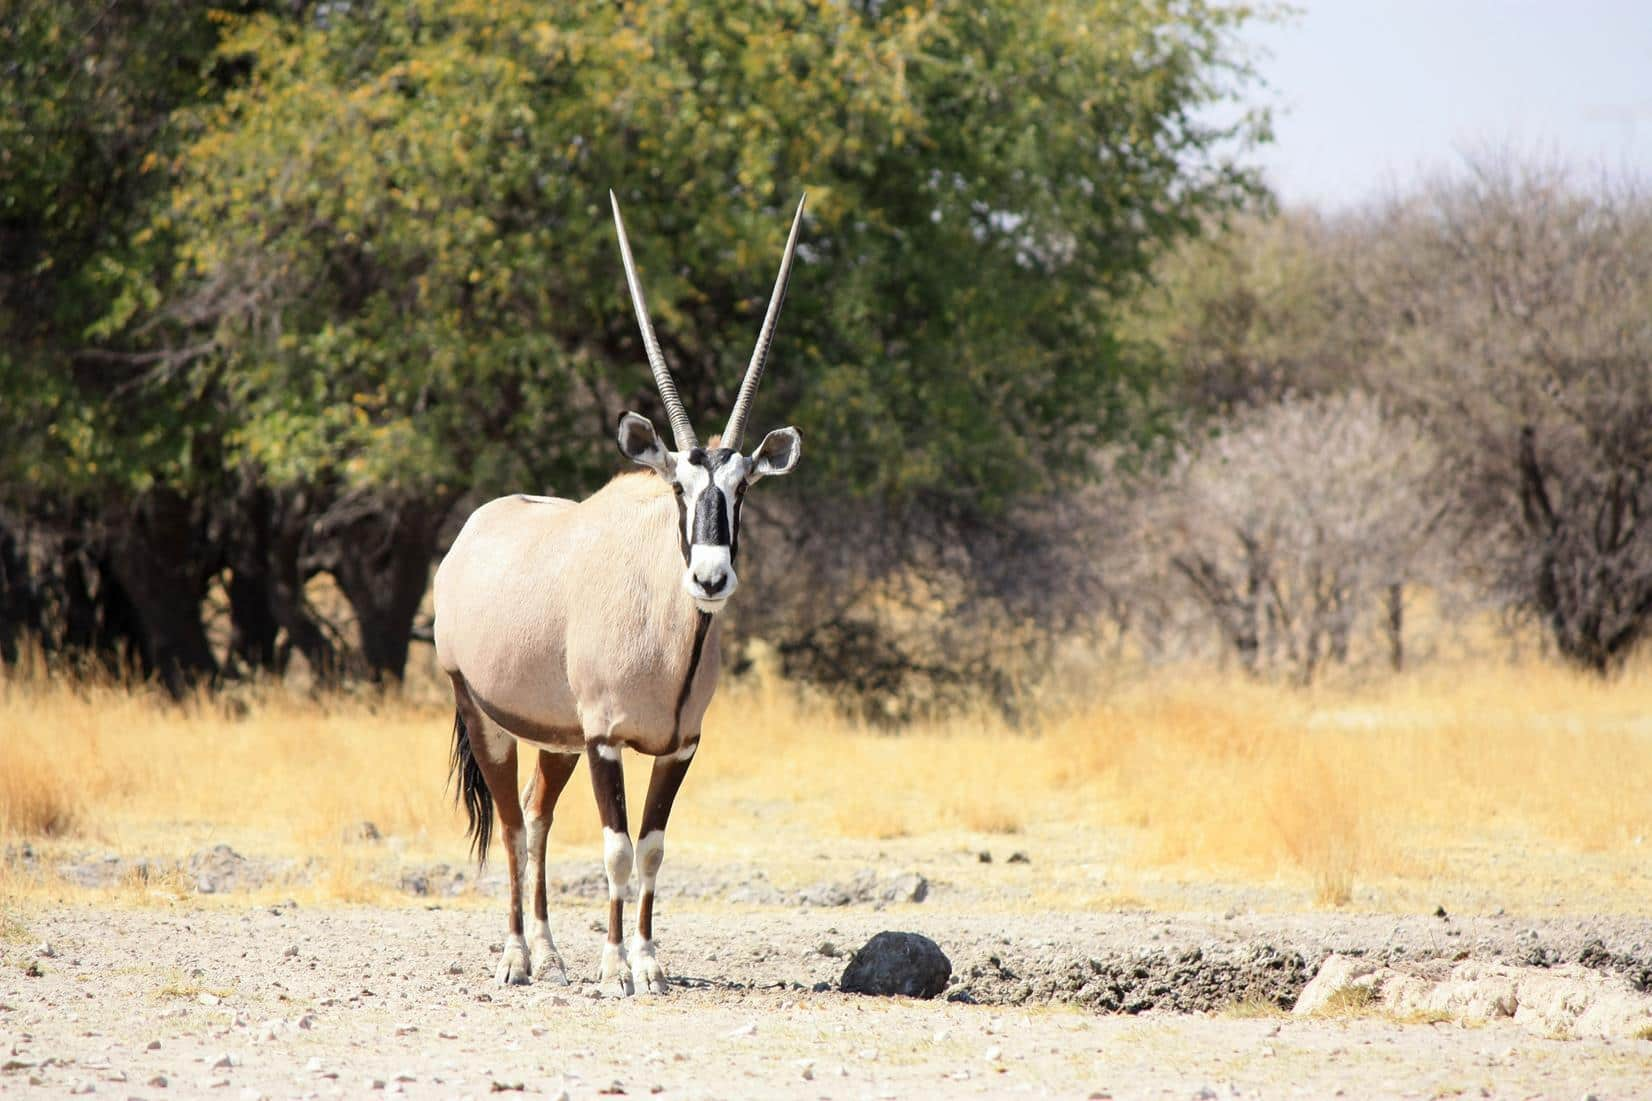 An oryx coming to drink.